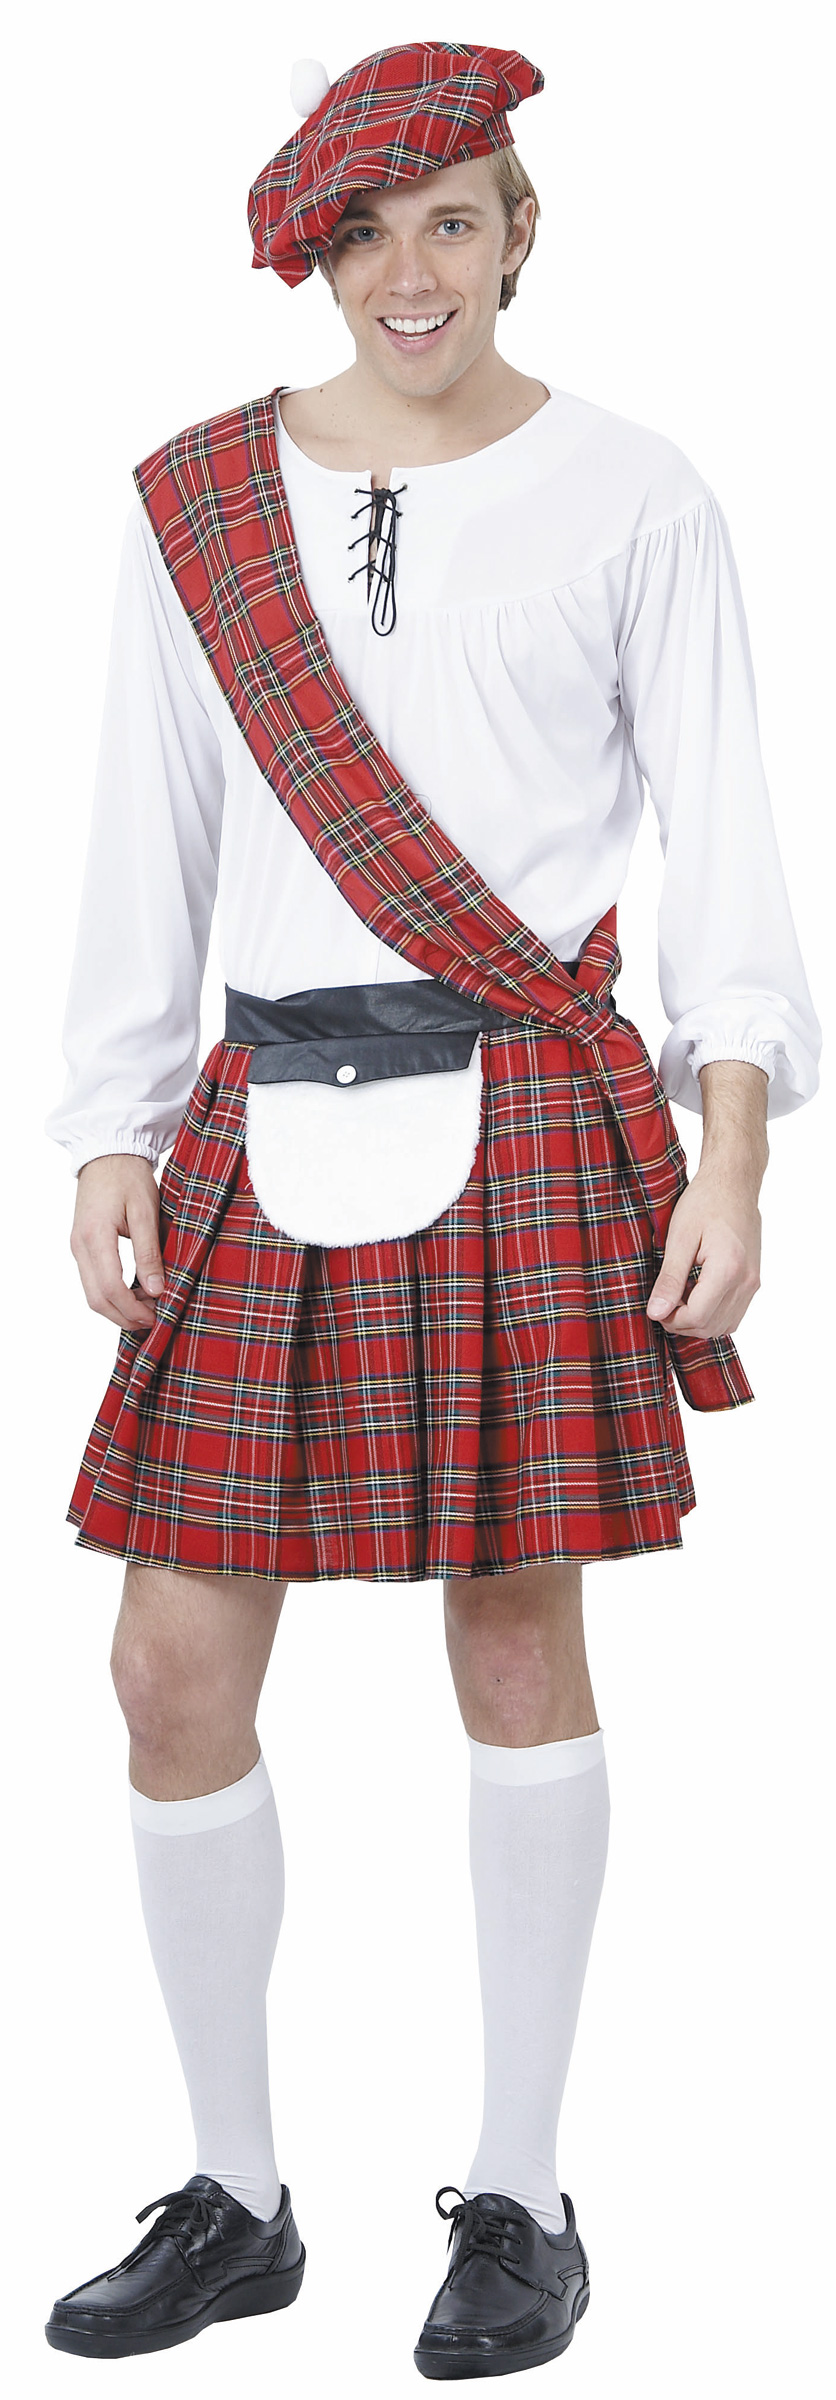 d guisement ecossais costume avec kilt costume sir cossais. Black Bedroom Furniture Sets. Home Design Ideas